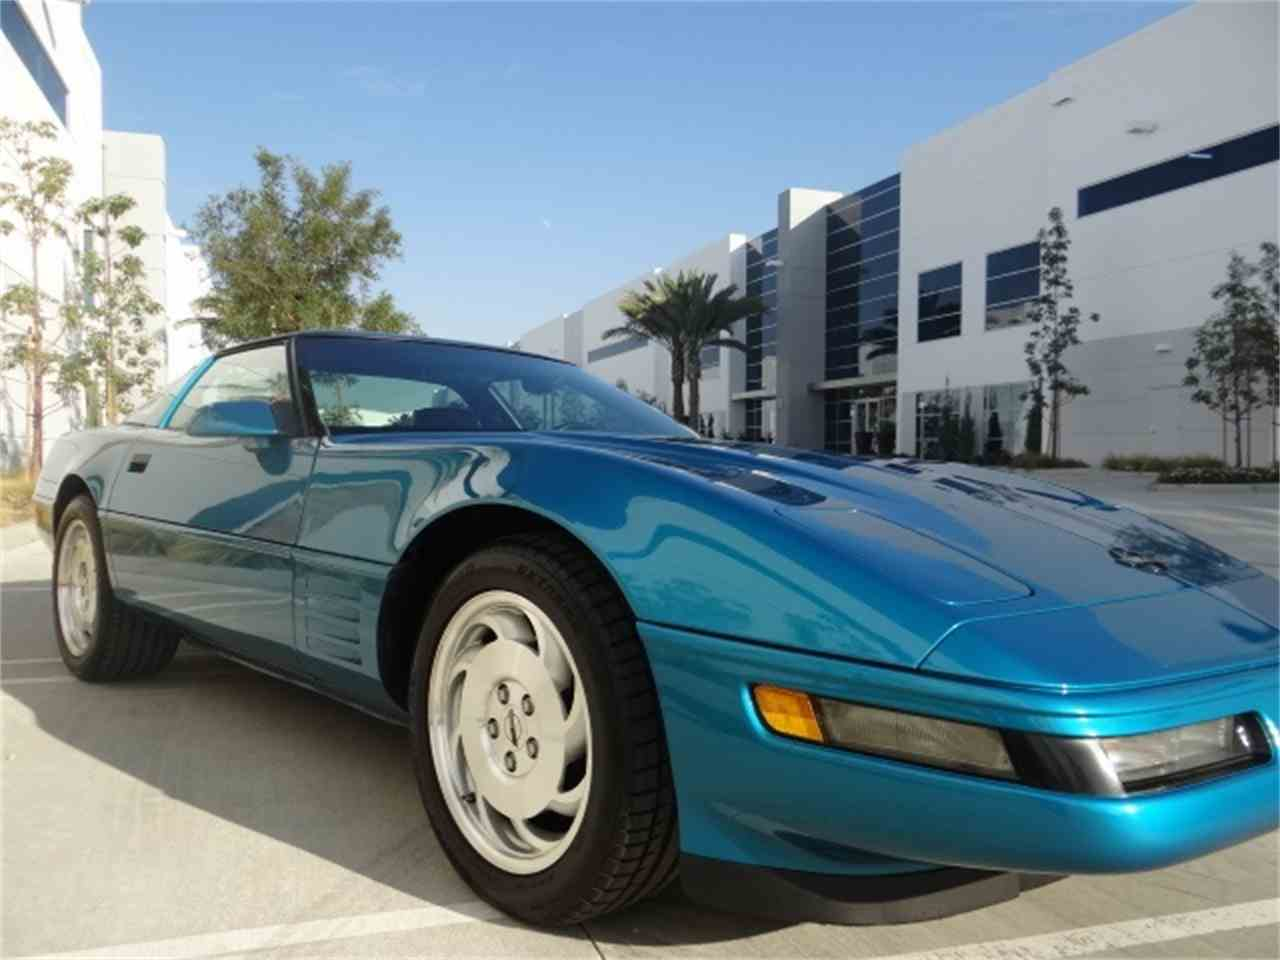 Large Picture of '93 Chevrolet Corvette located in Anaheim California - $13,999.00 - MO6A